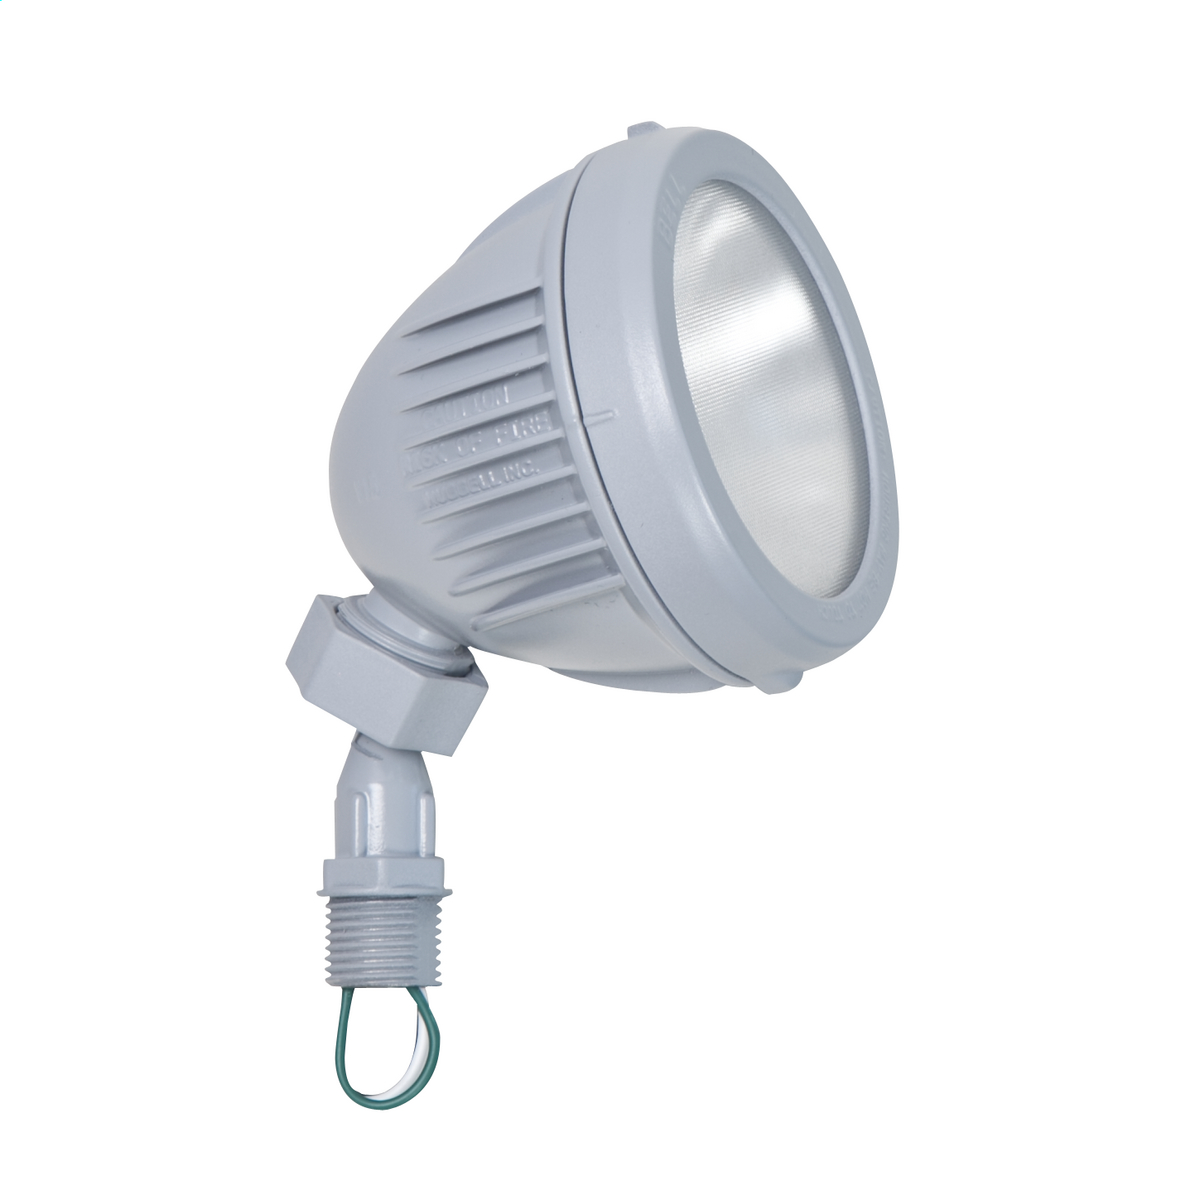 GRAY LED SWIVEL FLOODLIGHT